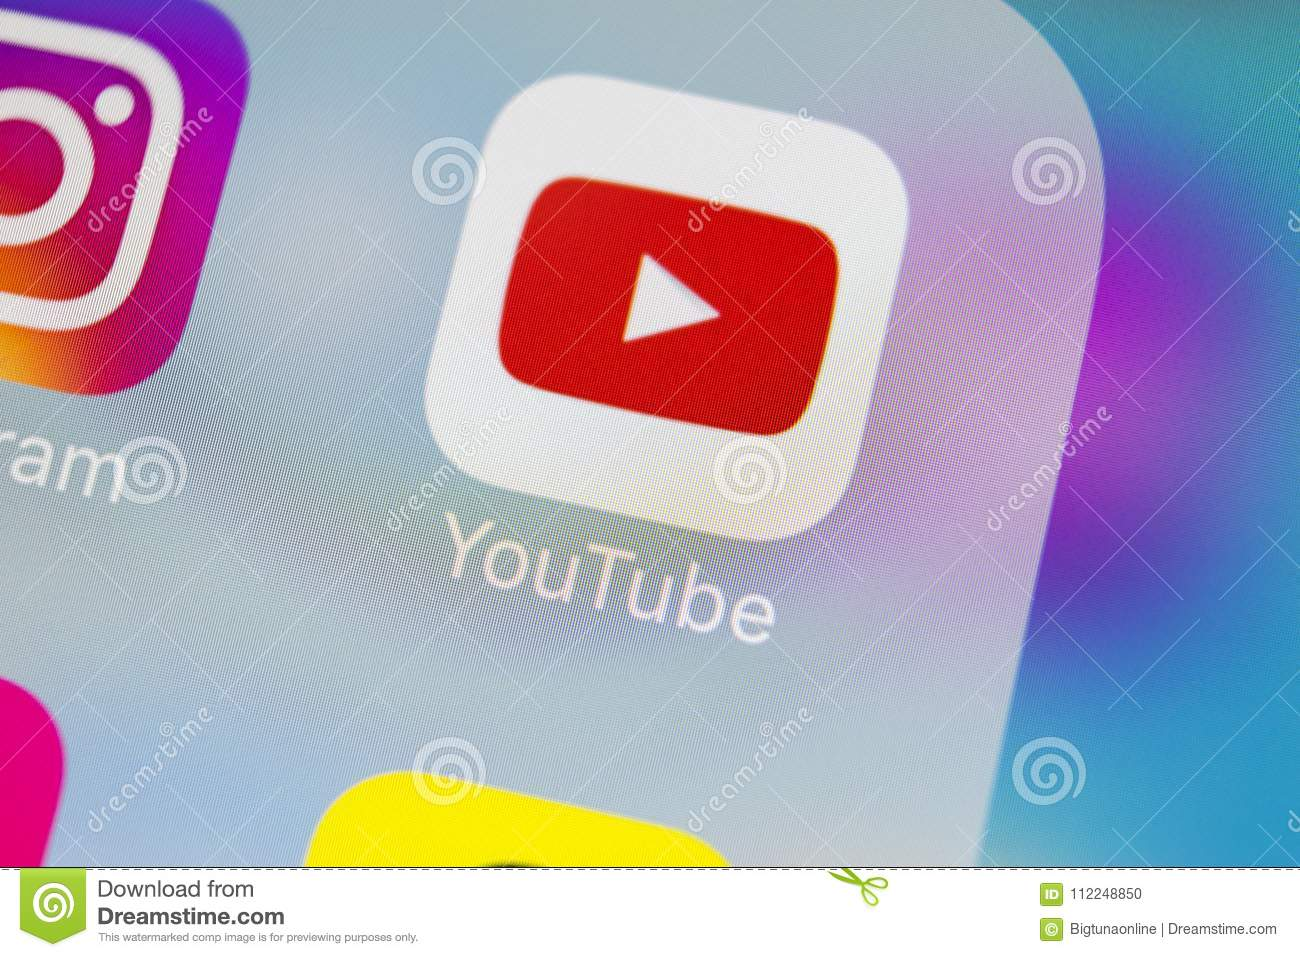 YouTube Application Icon On Apple IPhone X Smartphone Screen Close